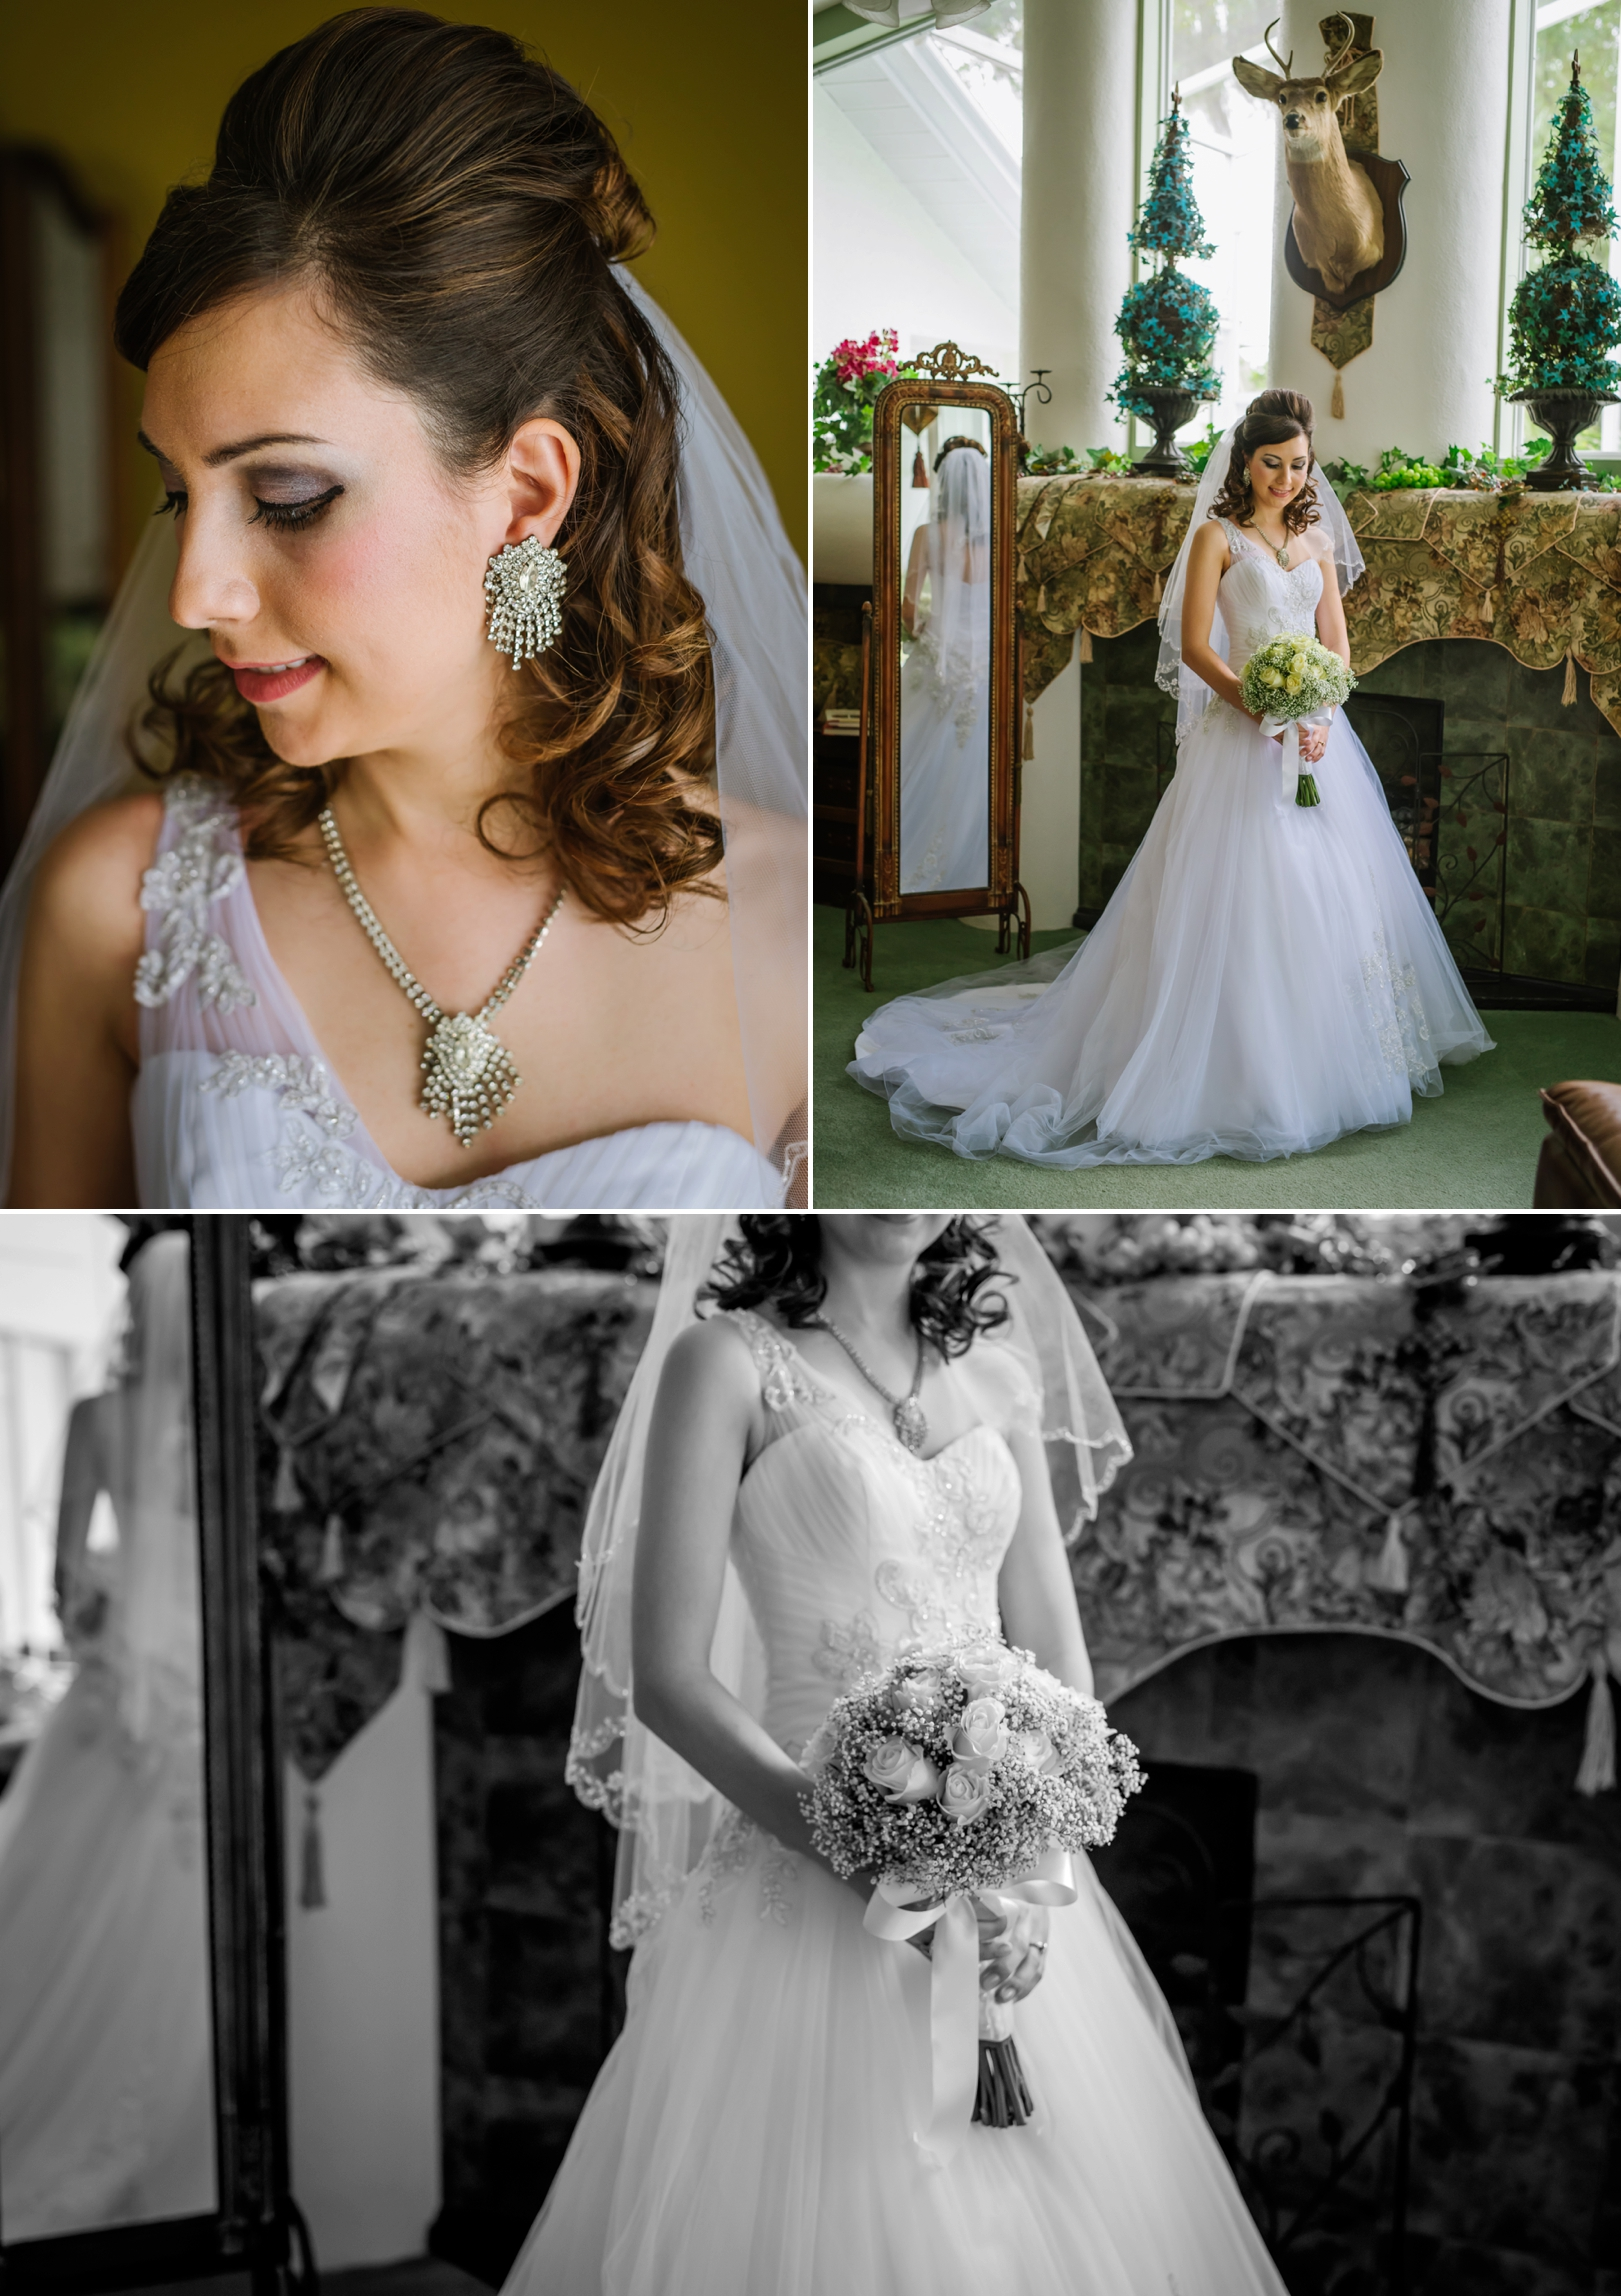 tampa-wedding-photography-traditional-cathedral-wedding_0005.jpg